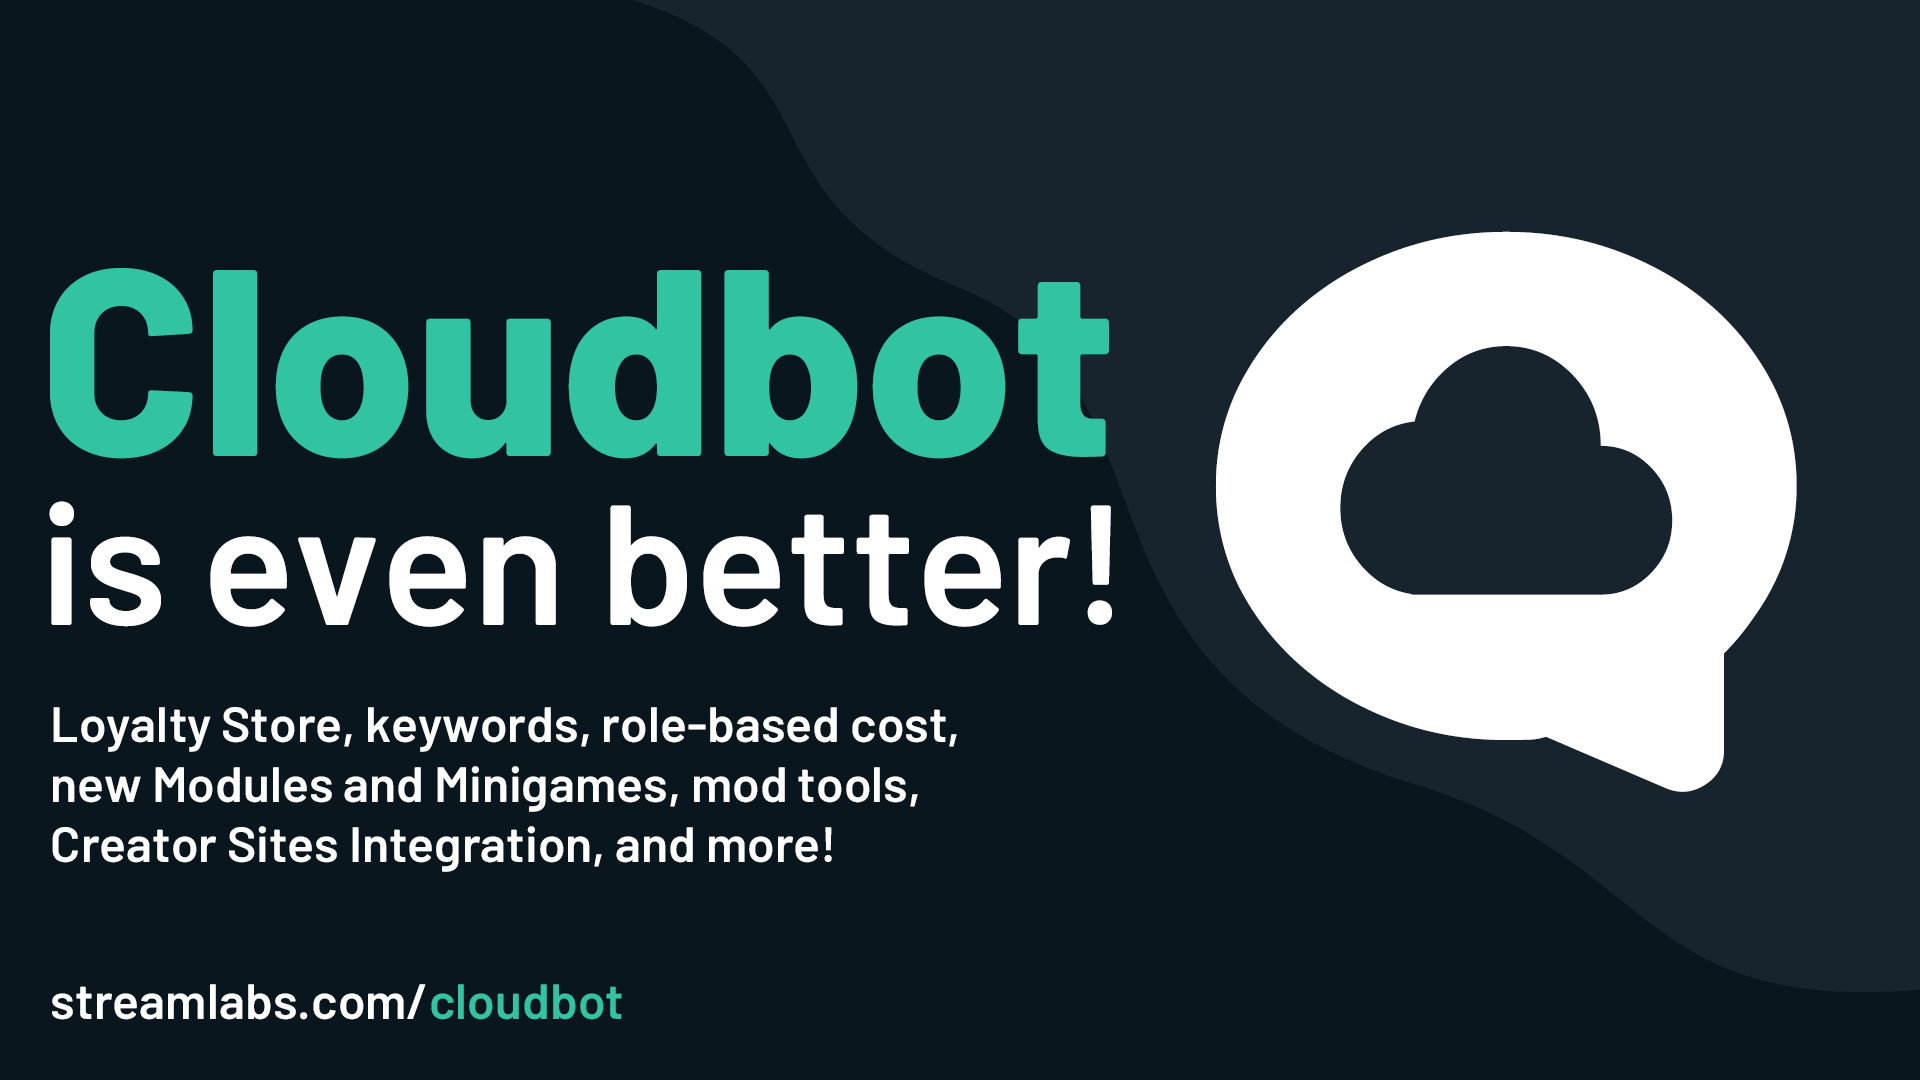 Cloudbot is getting even better - Streamlabs Blog